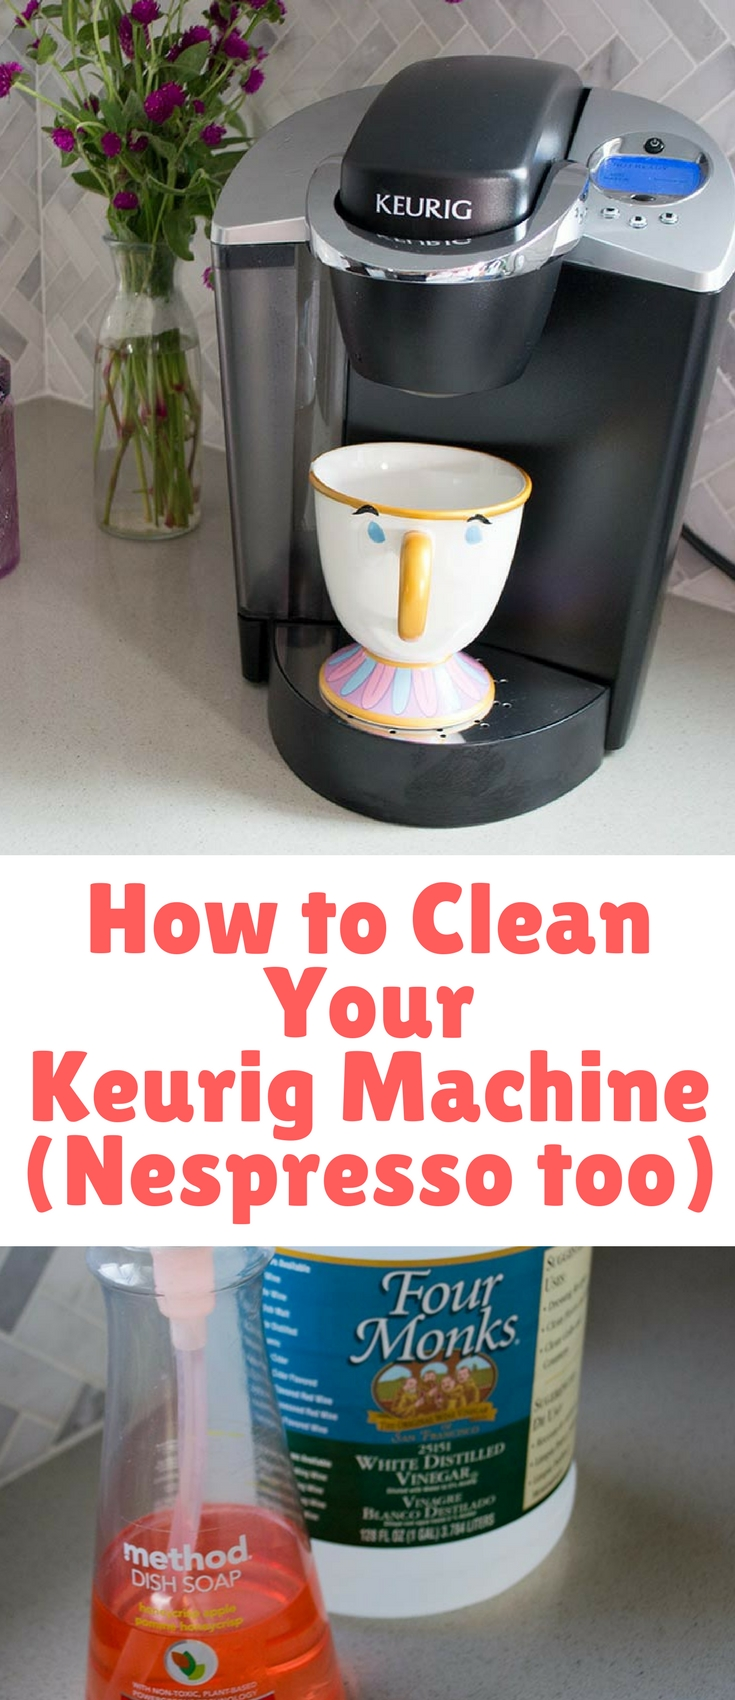 Ever wonder how to clean your Keurig? This tutorial is perfect for all those coffee loving moms & dads out there! Good coffee starts with a clean machine.